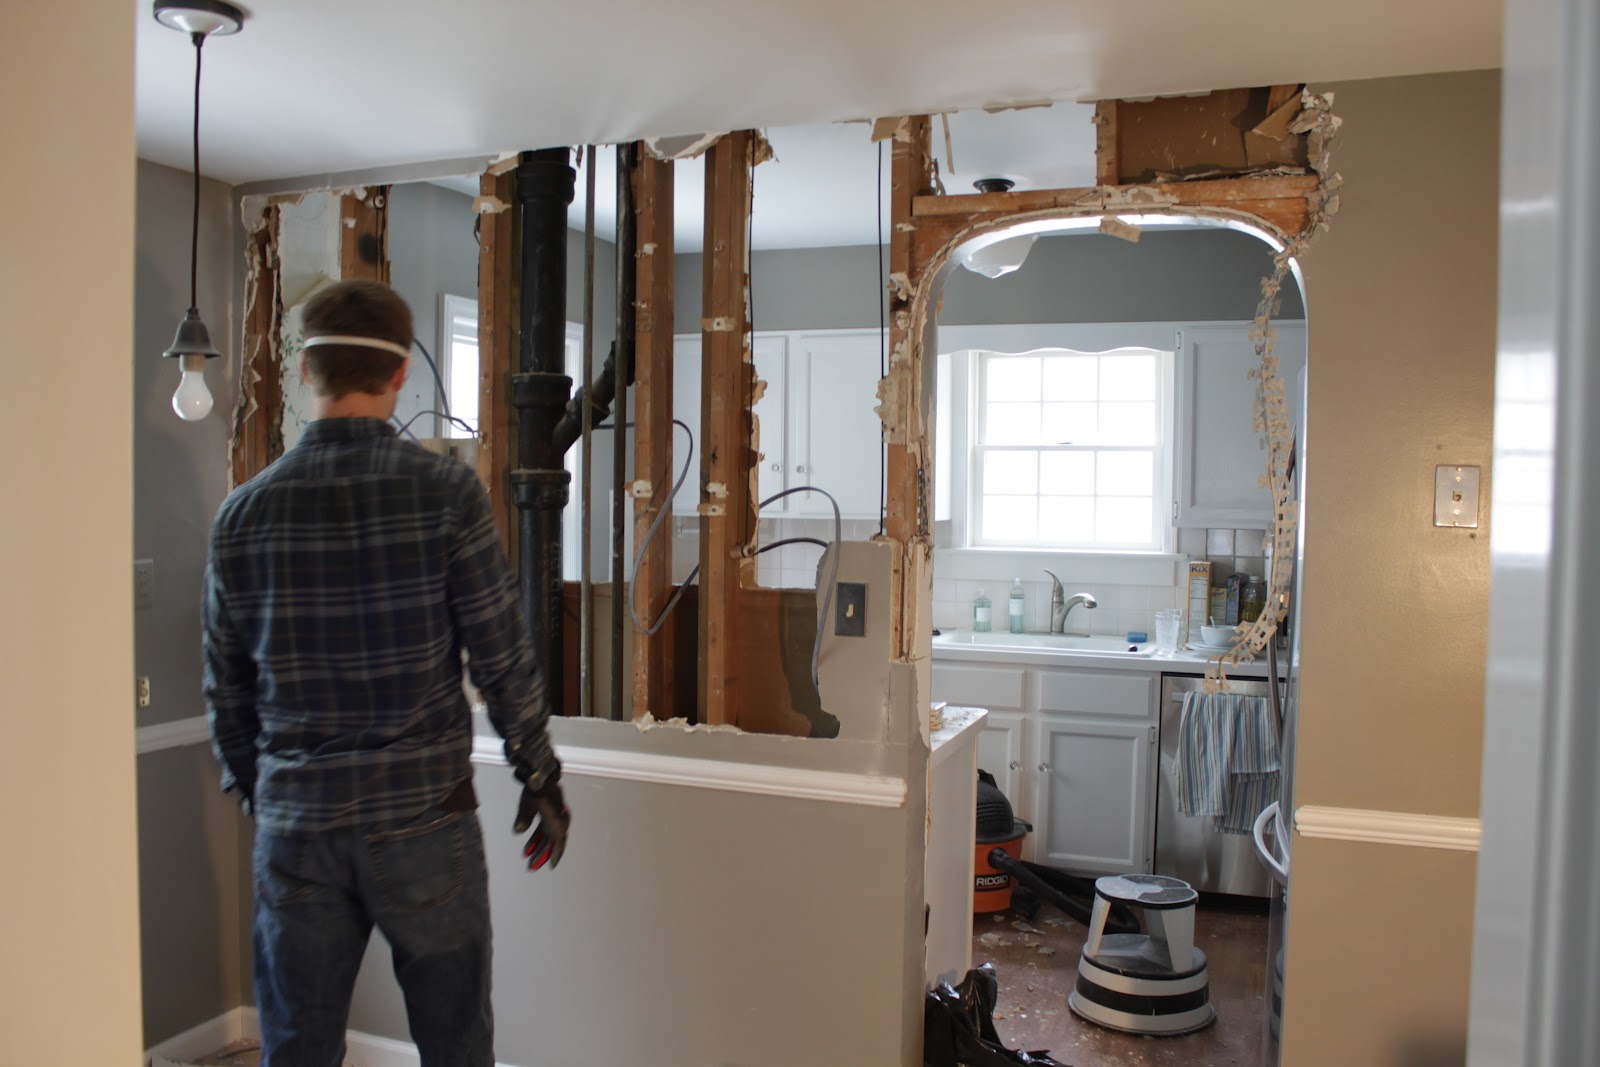 Home remodeling contractors-Fort Myers Home Remodeling Team-We do kitchen & bath remodeling, home renovations, custom lighting, custom cabinet installation, cabinet refacing and refinishing, outdoor kitchens, commercial kitchen, countertops and more